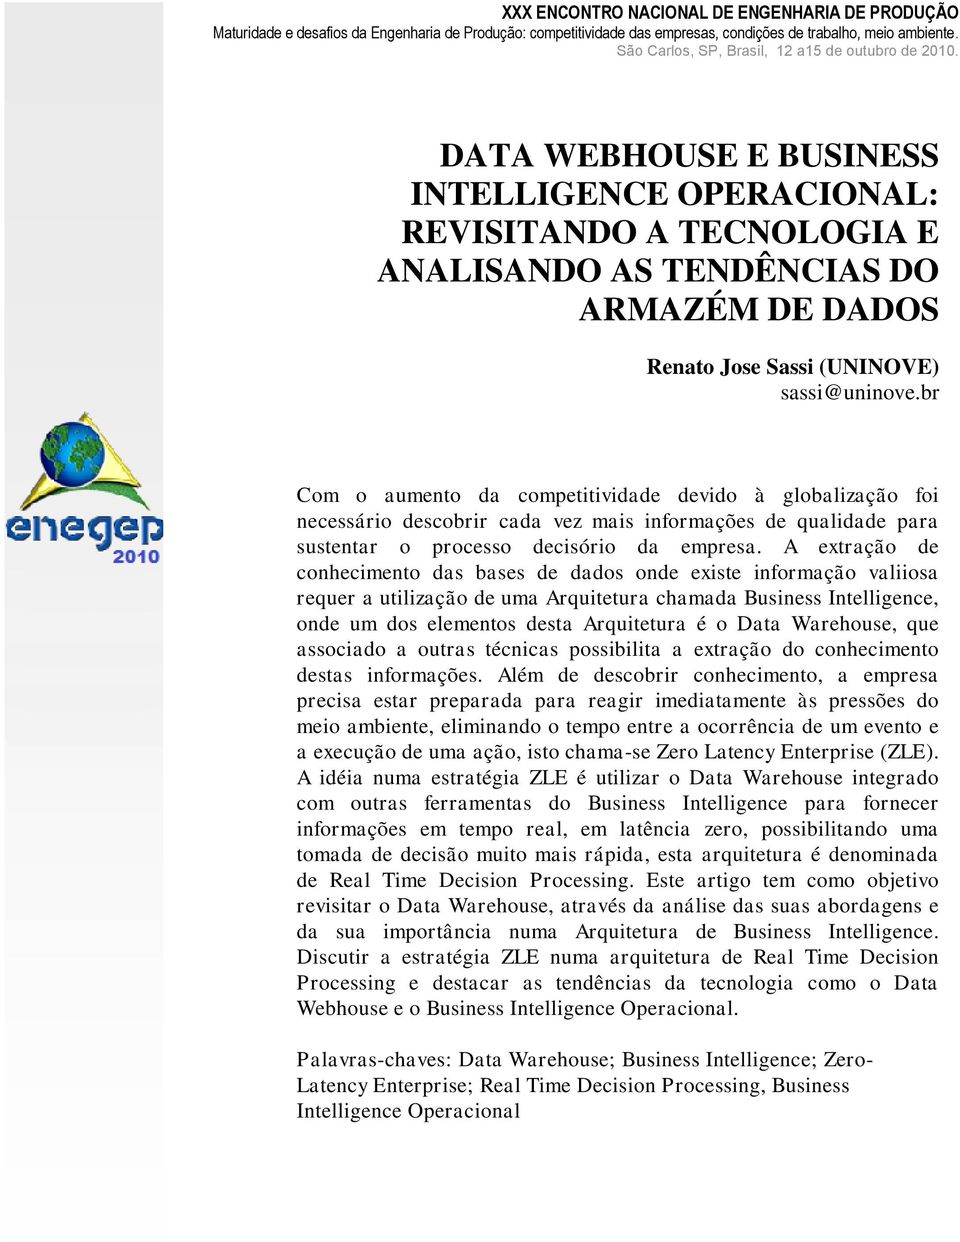 DATA WEBHOUSE E BUSINESS INTELLIGENCE OPERACIONAL: REVISITANDO A TECNOLOGIA E ANALISANDO AS TENDÊNCIAS DO ARMAZÉM DE DADOS Renato Jose Sassi (UNINOVE) sassi@uninove.